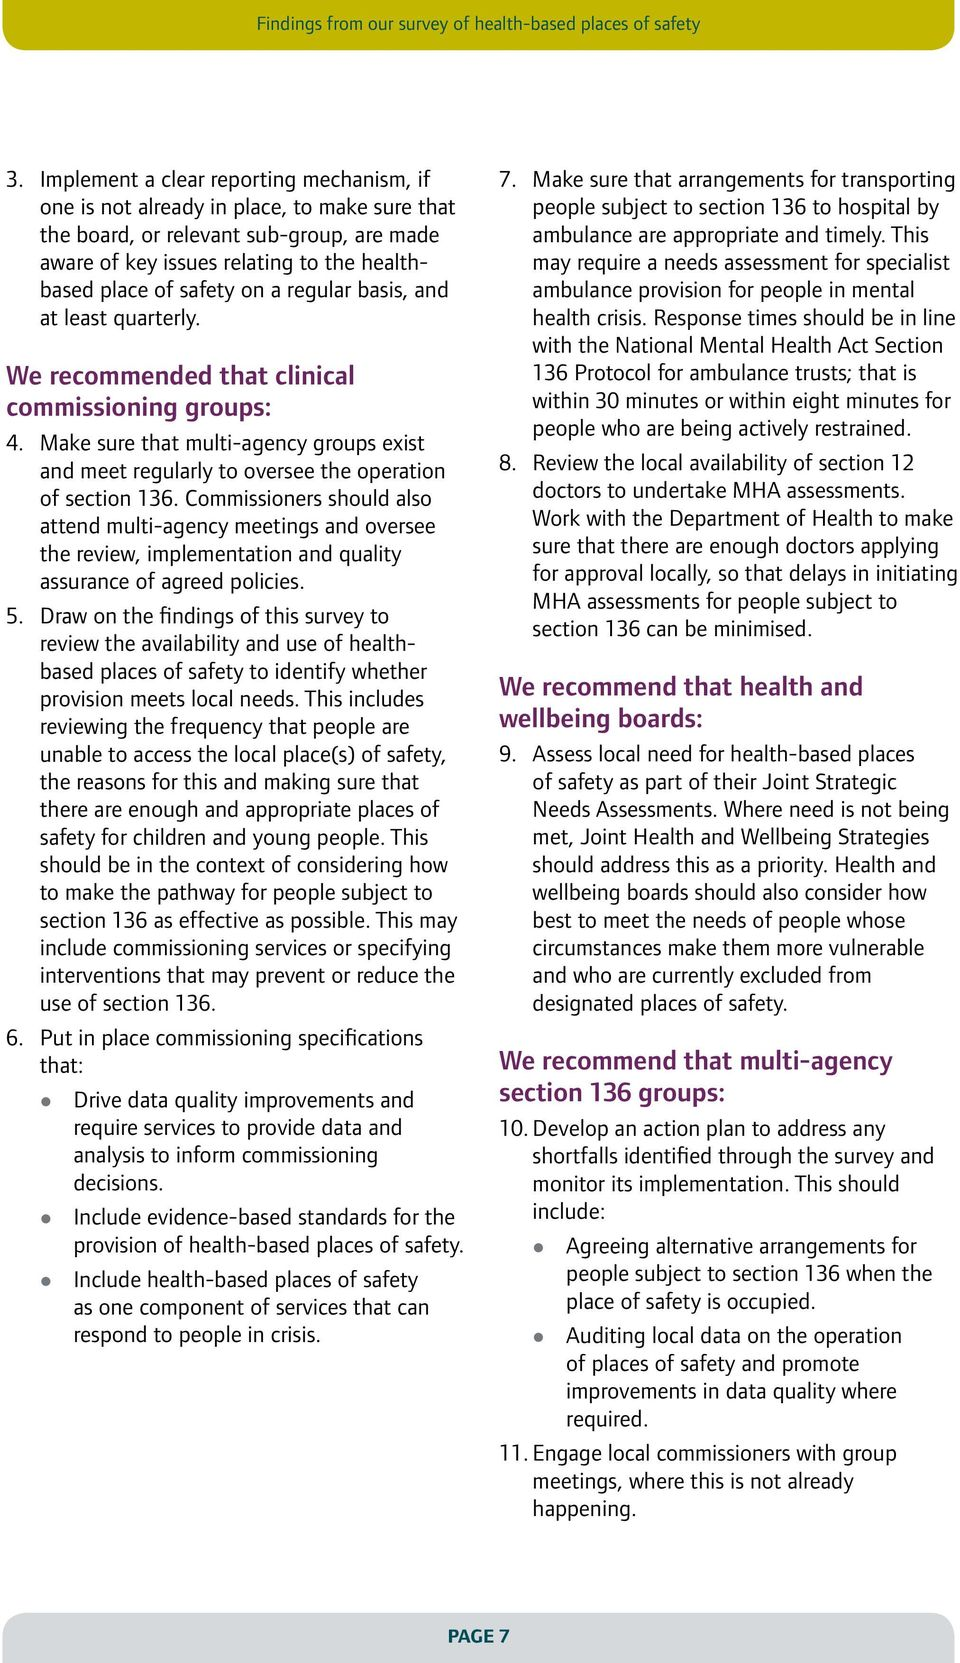 a regular basis, and at least quarterly. We recommended that clinical commissioning groups: 4. Make sure that multi-agency groups exist and meet regularly to oversee the operation of section 136.